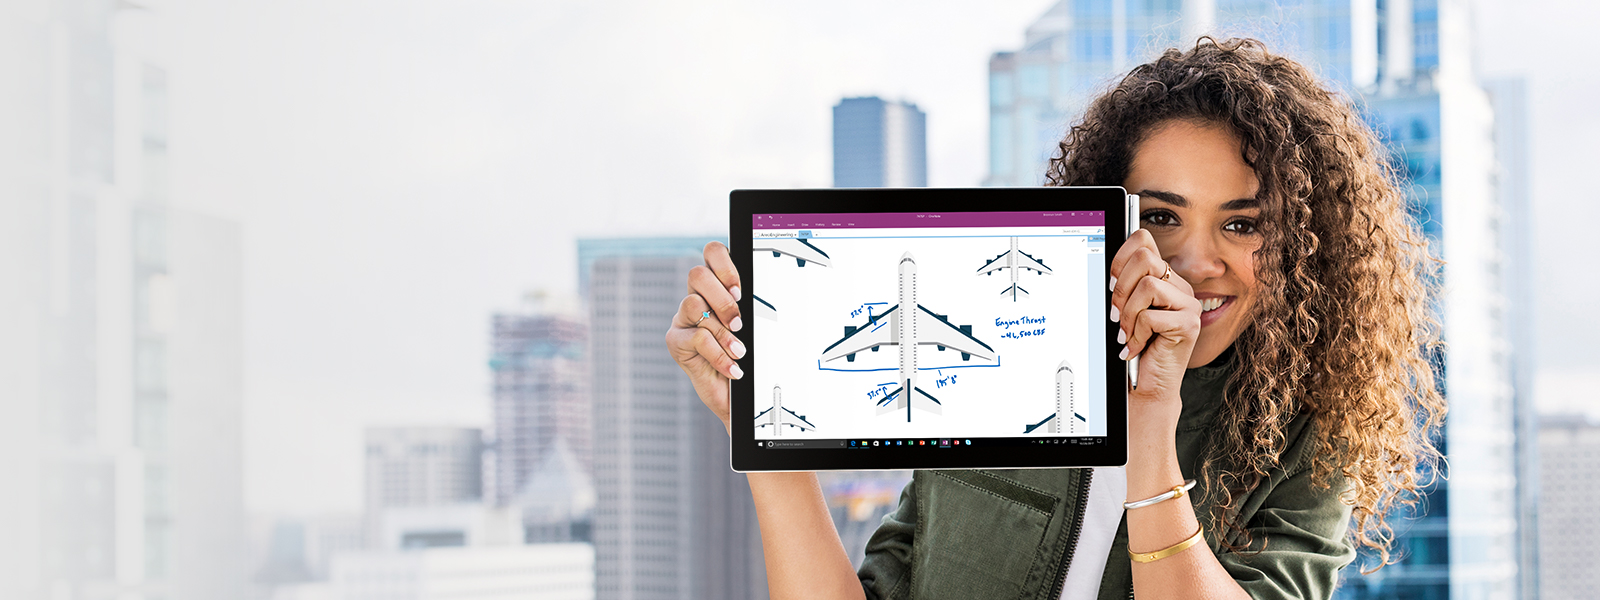 A woman holding a tablet with a plane diagram on the screen